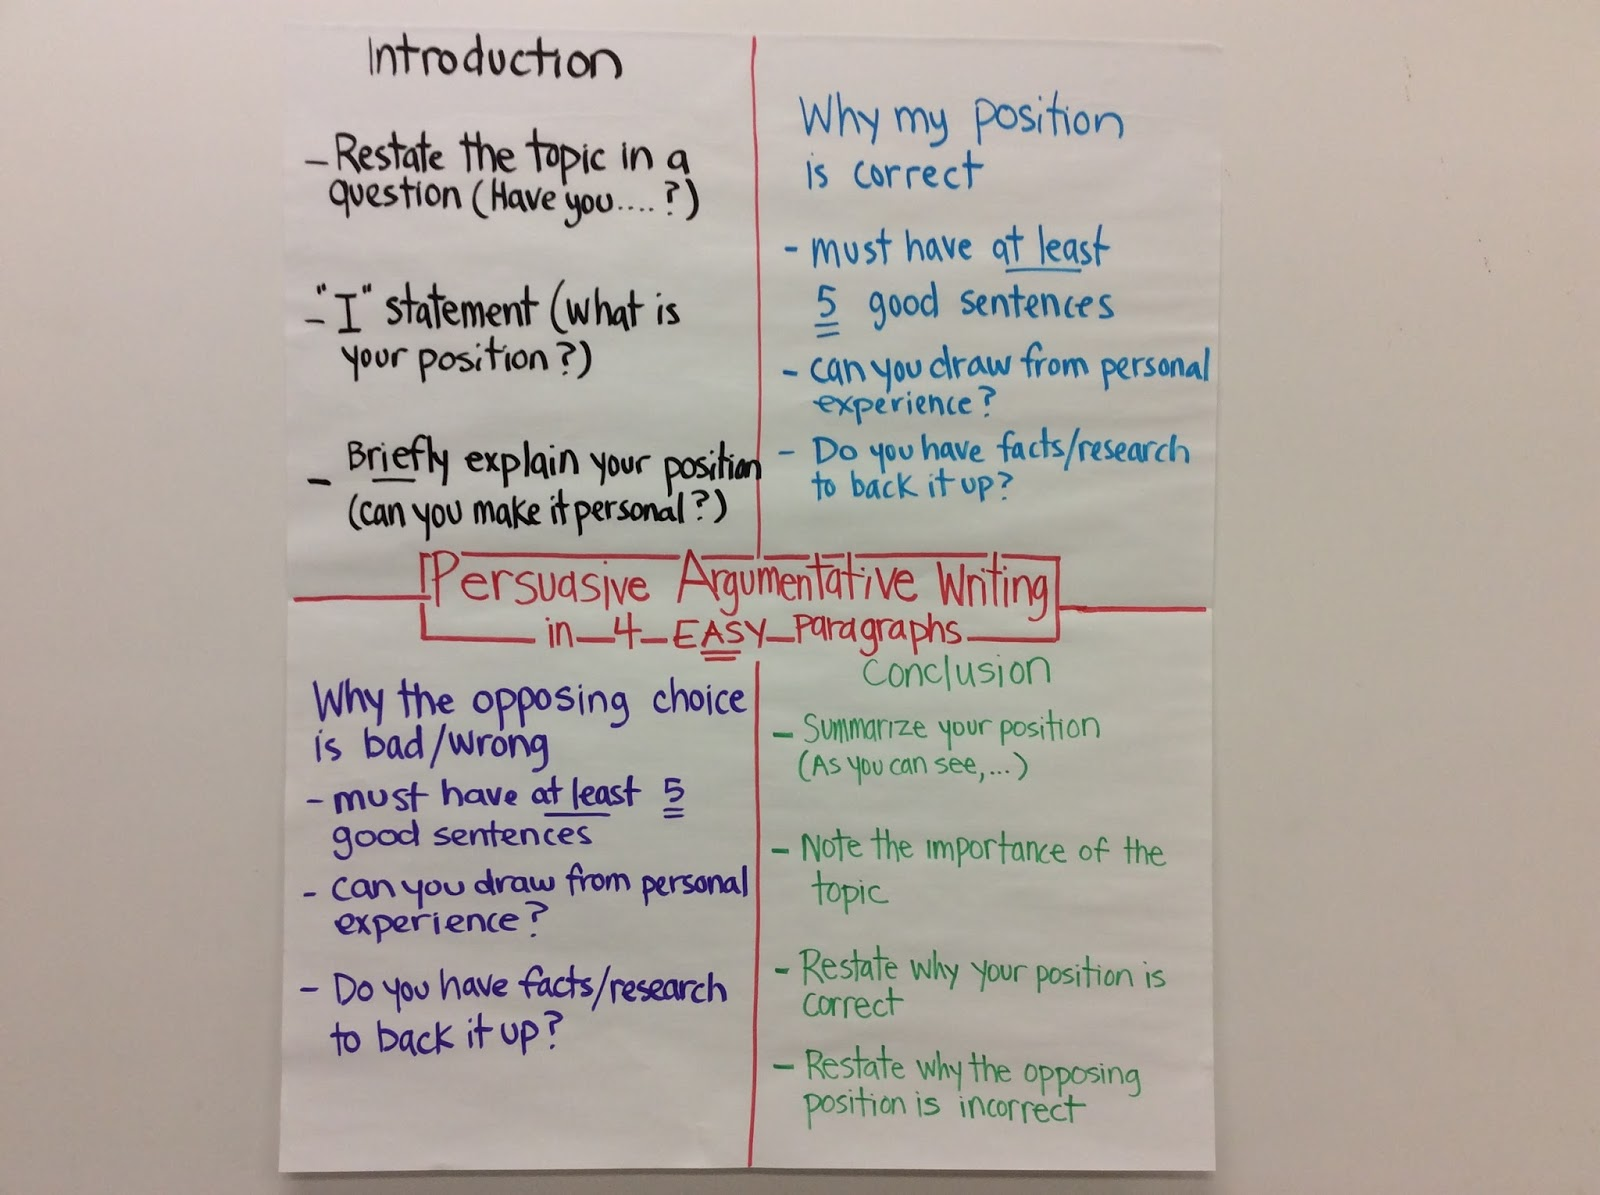 expository essay lesson plans 5th grade A 4th grade lesson on how to plan and write an expository essay to a prompt.